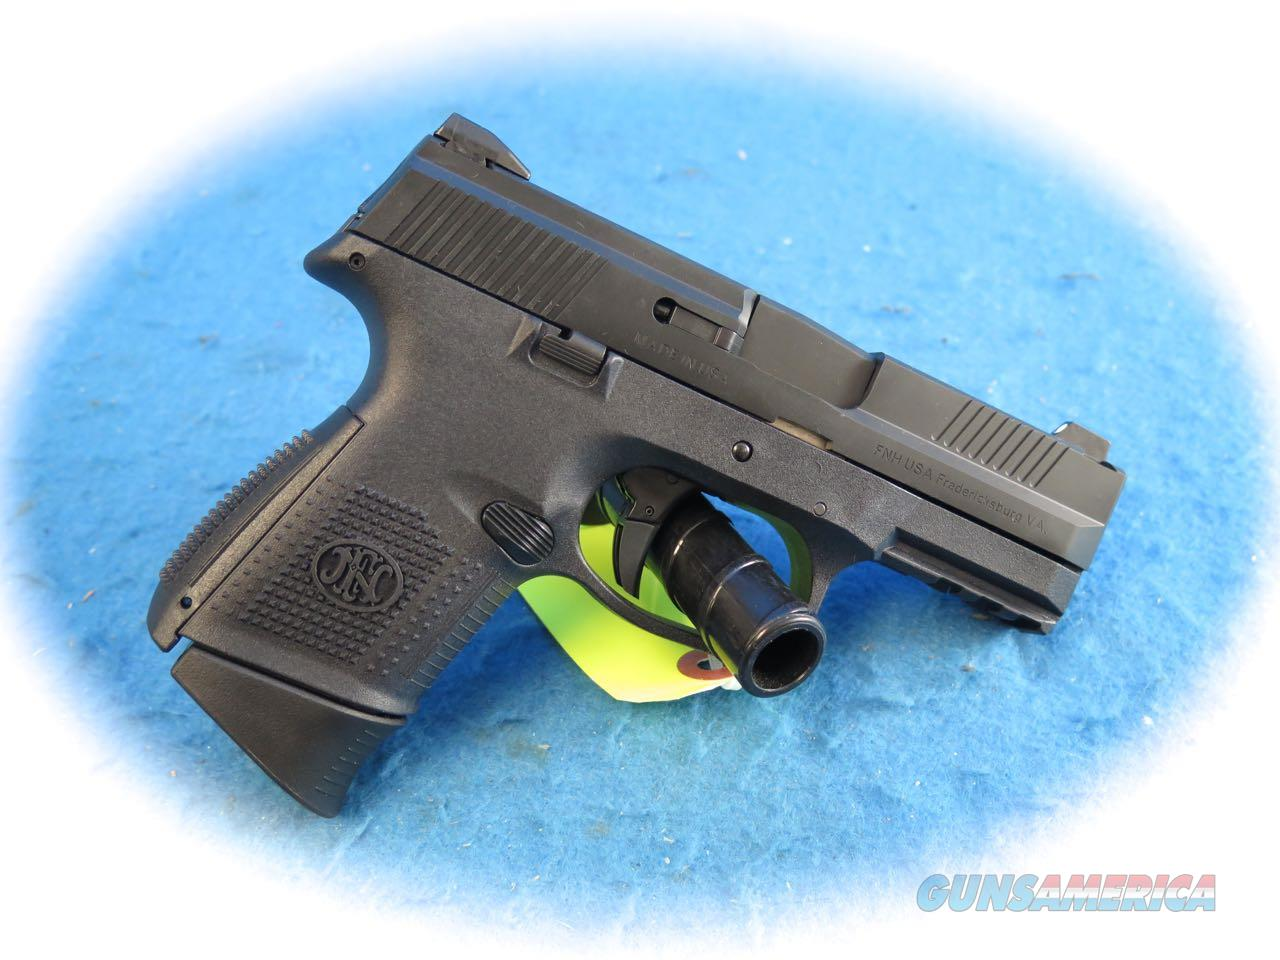 FNH Model FNS Compact 9mm Pistol W/3 Mags **New**  Guns > Pistols > FNH - Fabrique Nationale (FN) Pistols > FNS